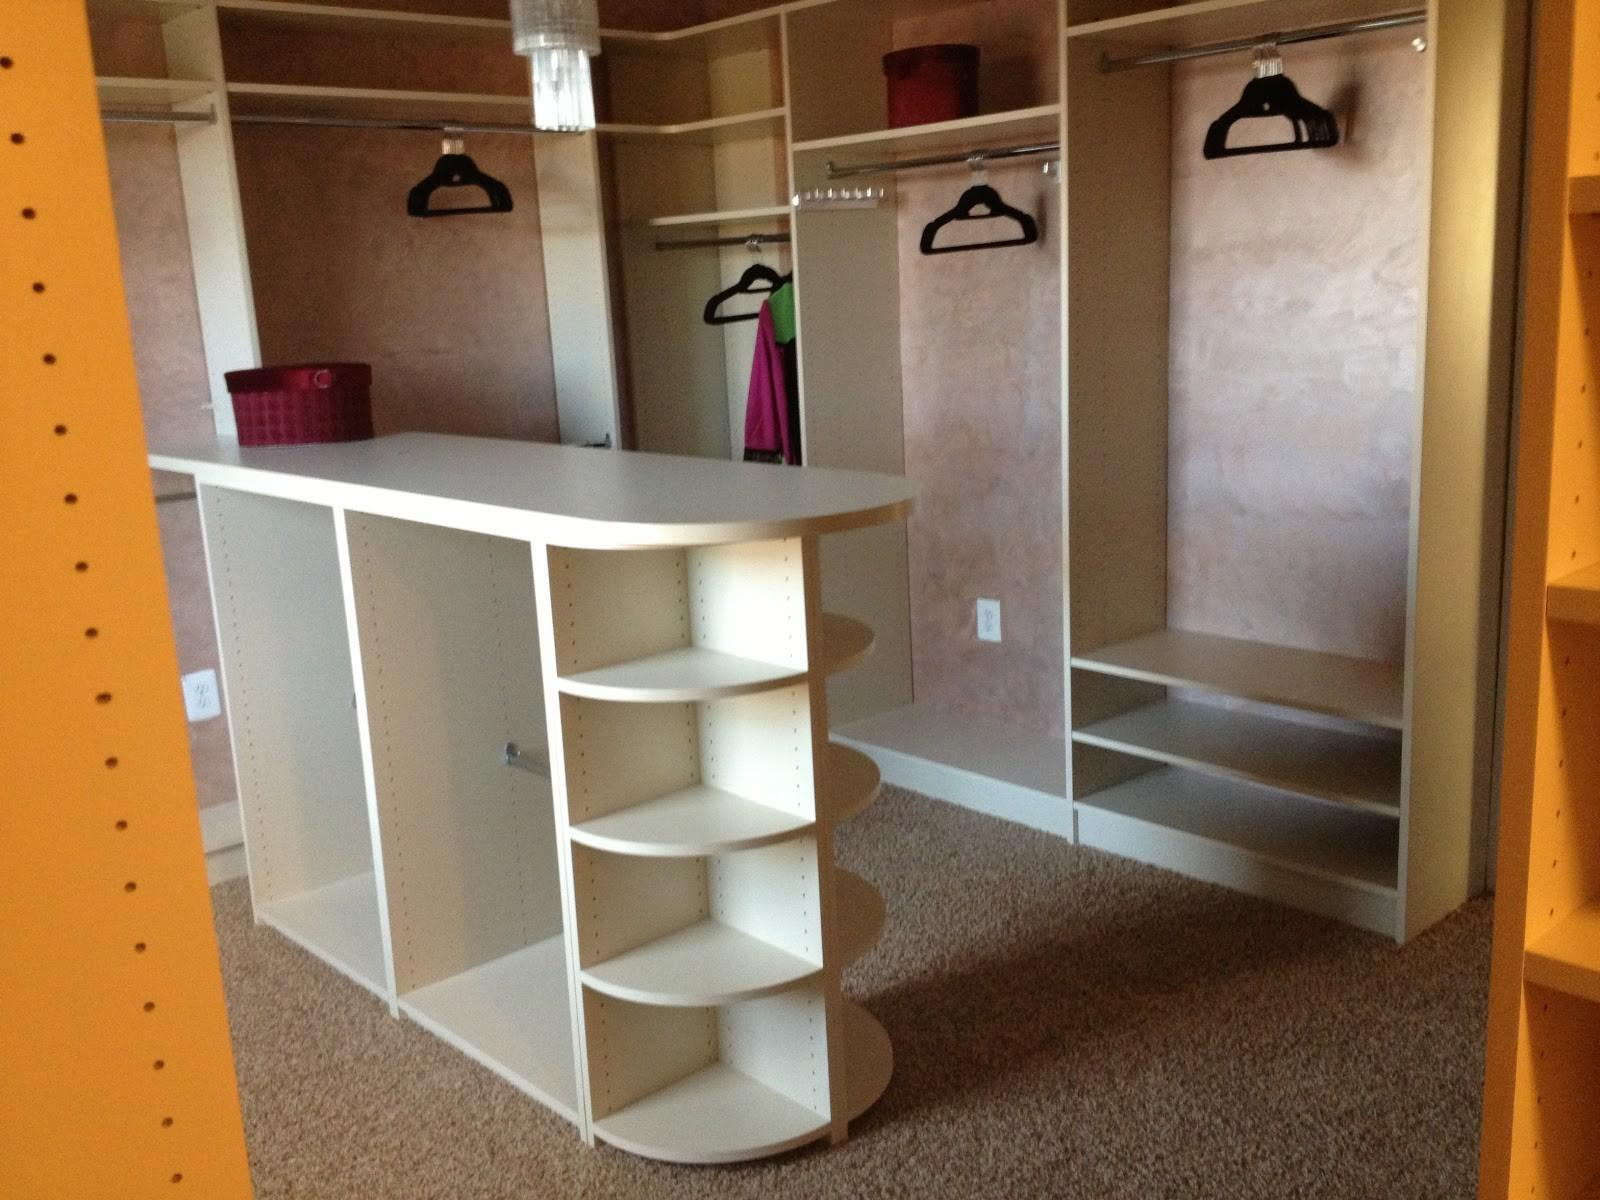 Awesome Under Stairs Storage Space Ideas That Will Make Your Life So Much Easier Photos Decoratorist